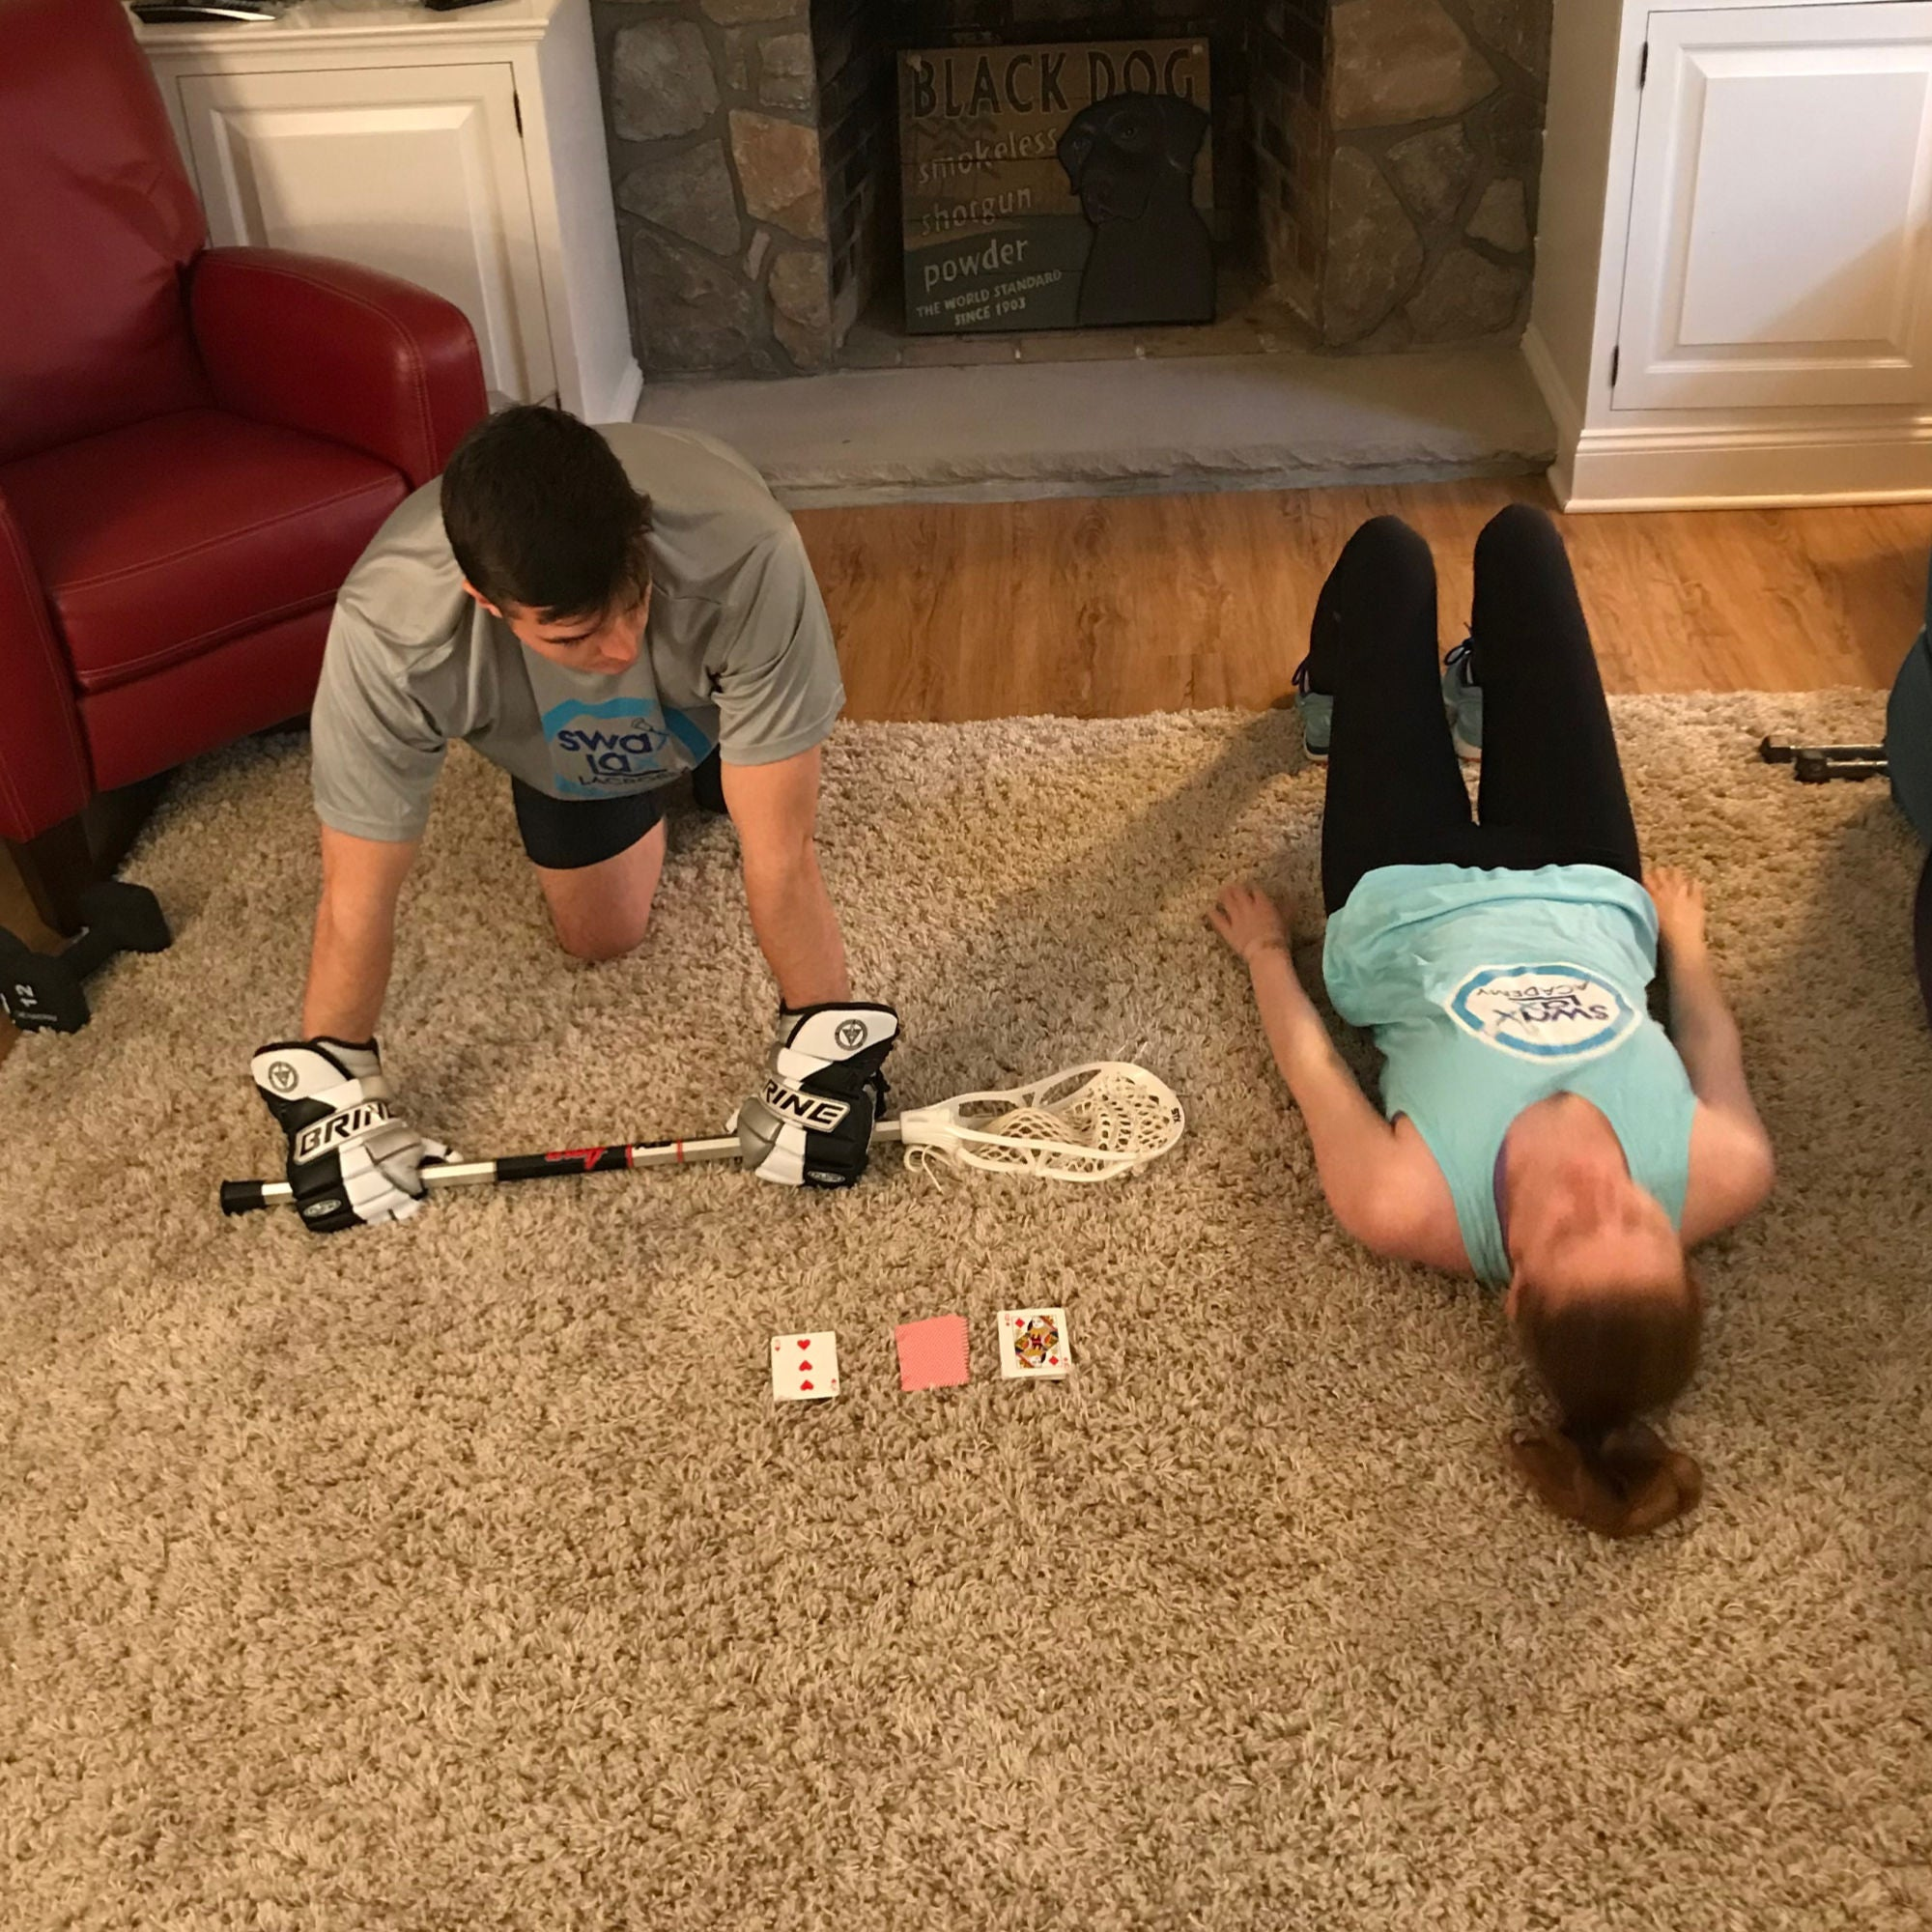 Lacrosse coaches Brian and Liza staying in shape and training using playing cards as prompts